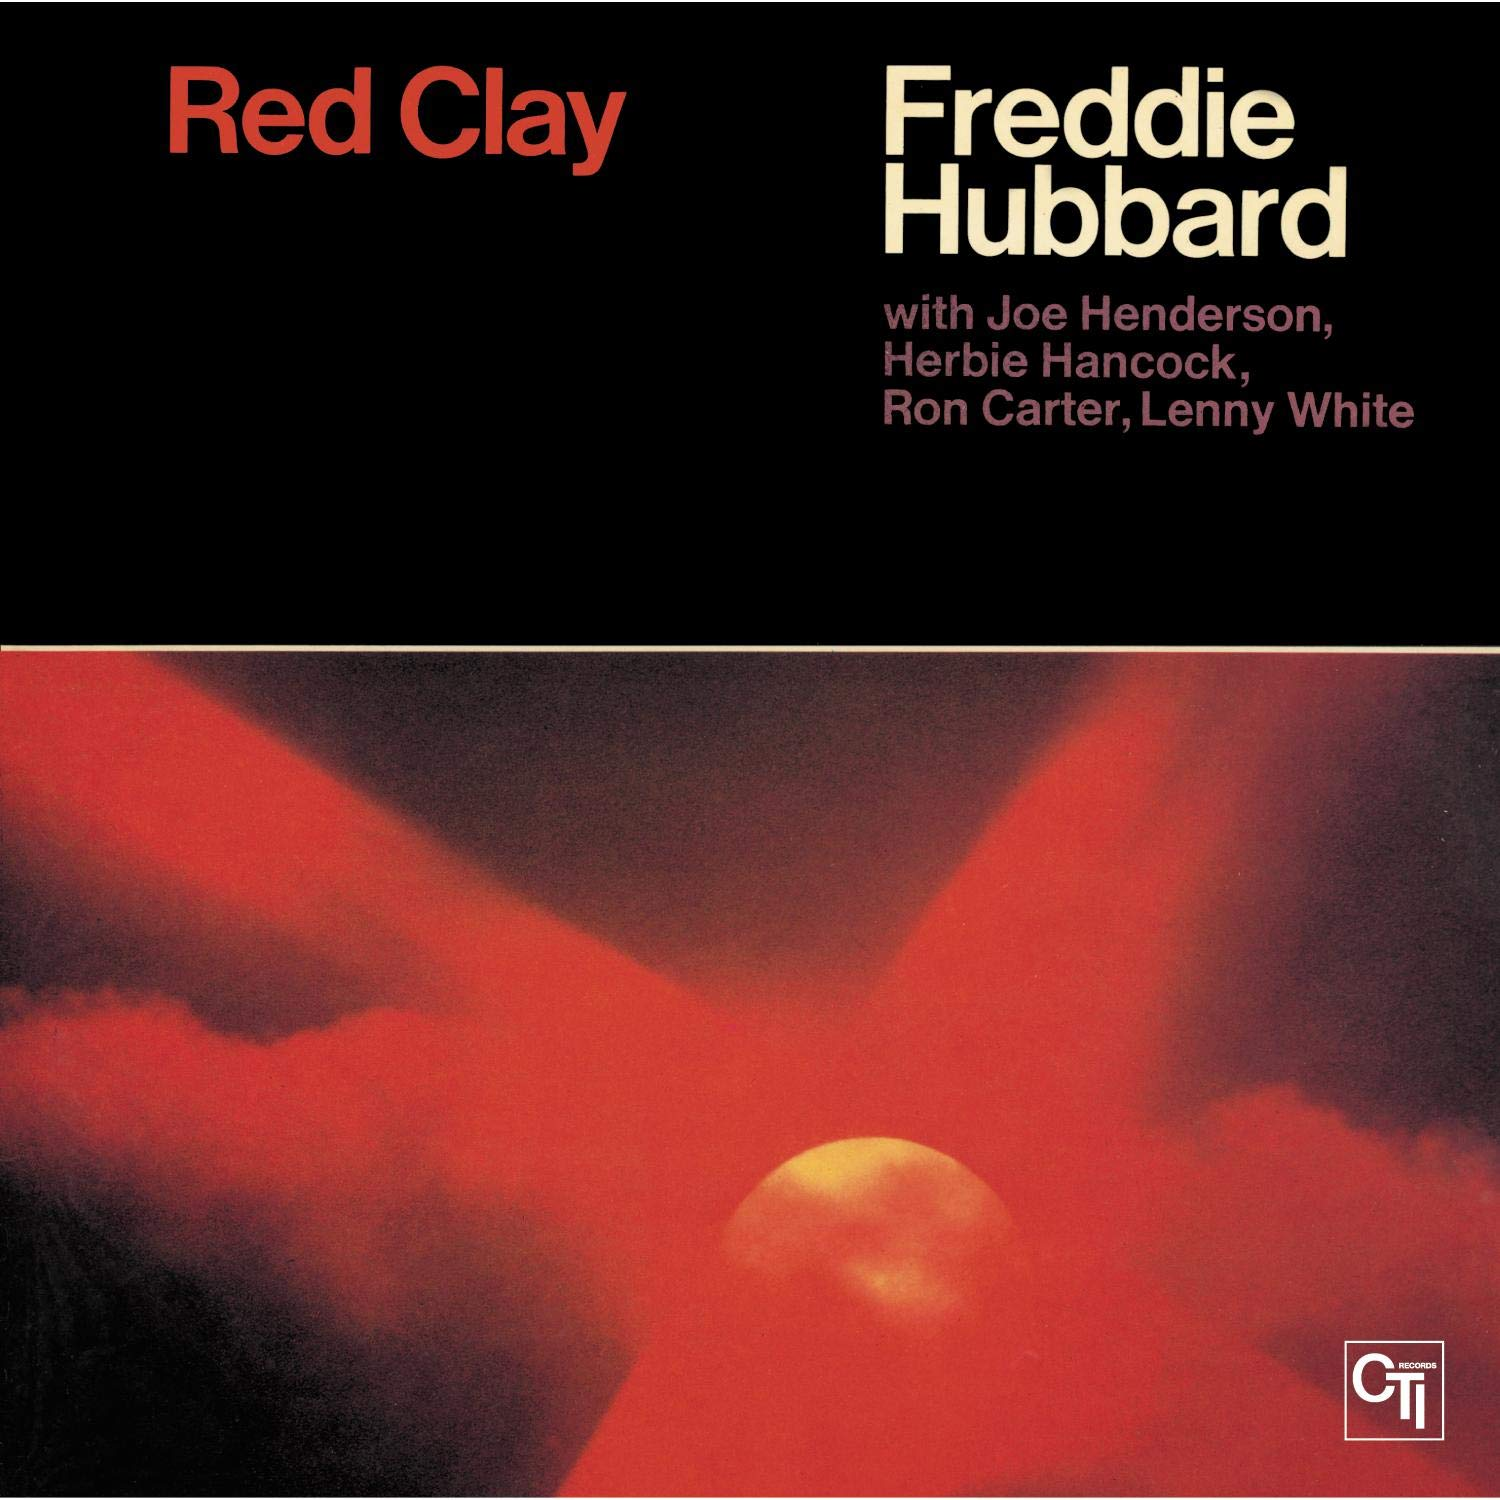 Freddie Hubbard - Red Clay - Amazon.com Music